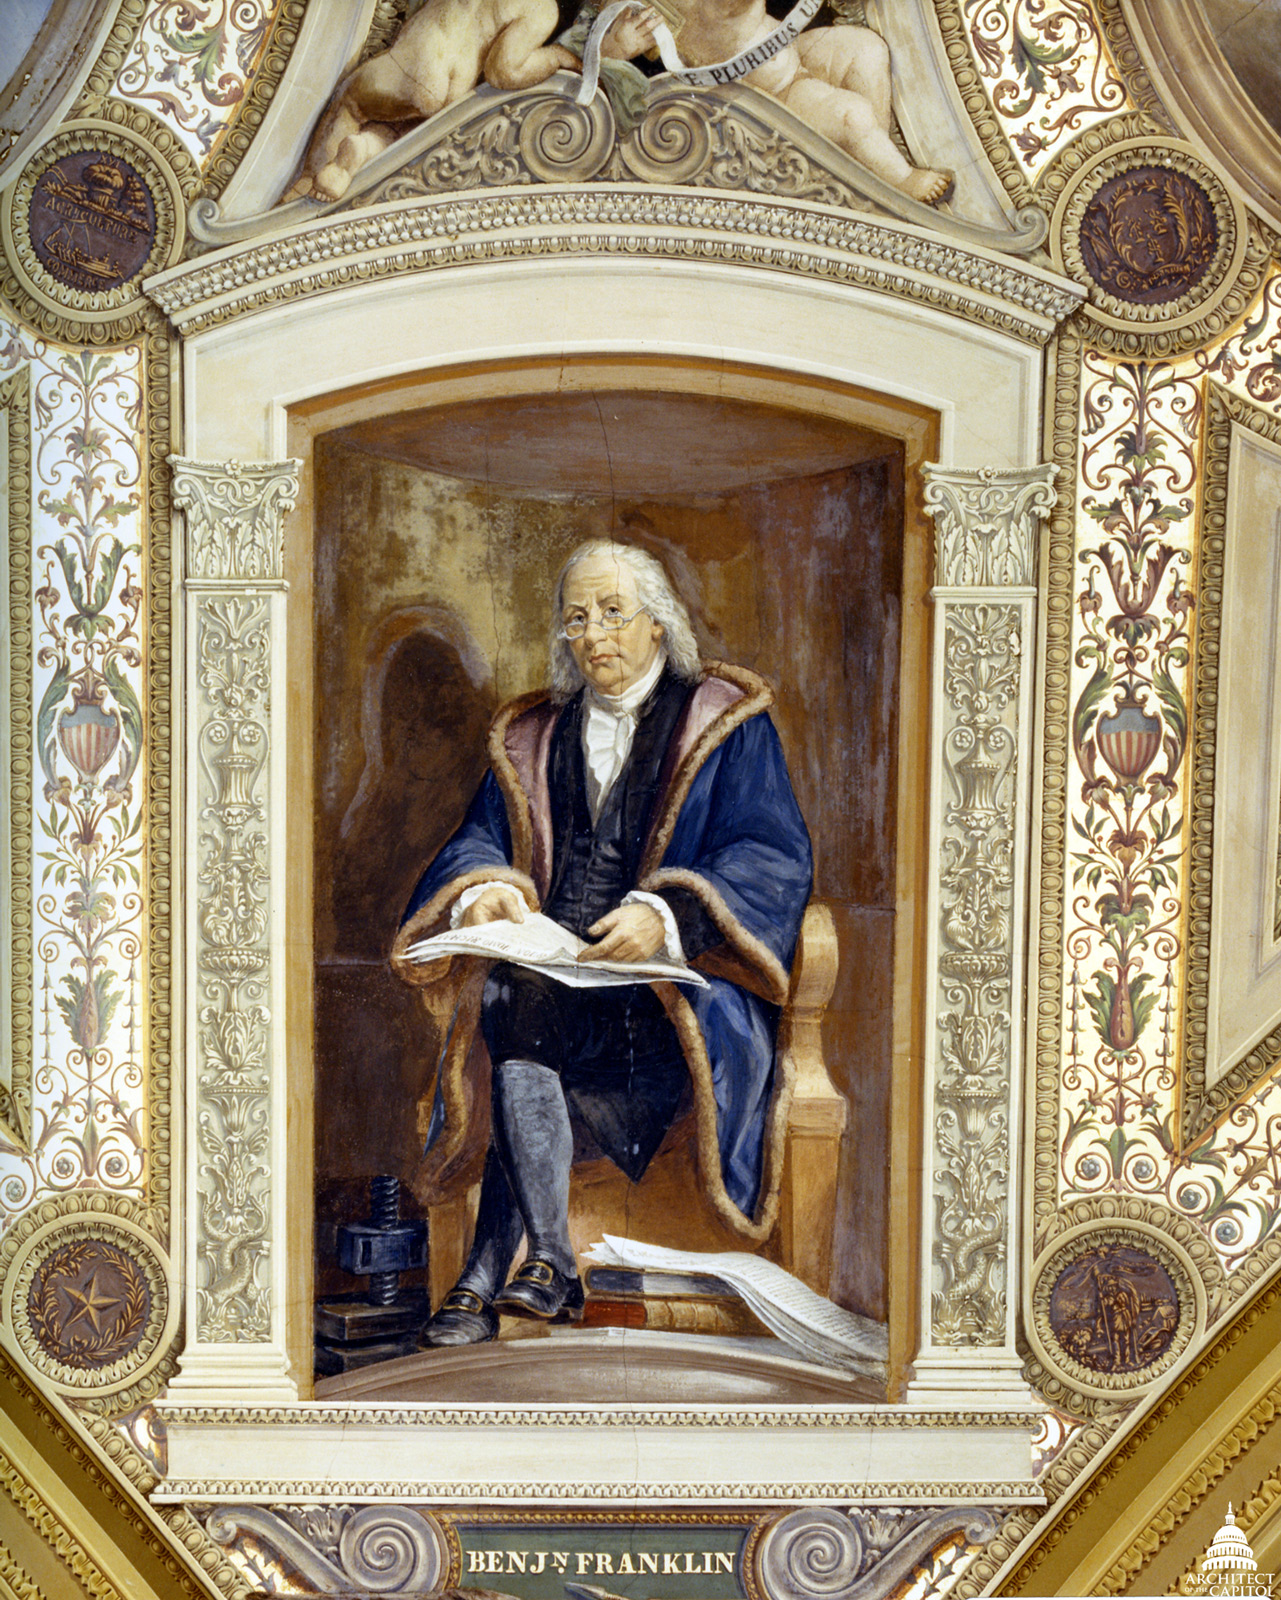 Benjamin Franklin portrait in the President's Room in the Senate Wing of the Capitol.